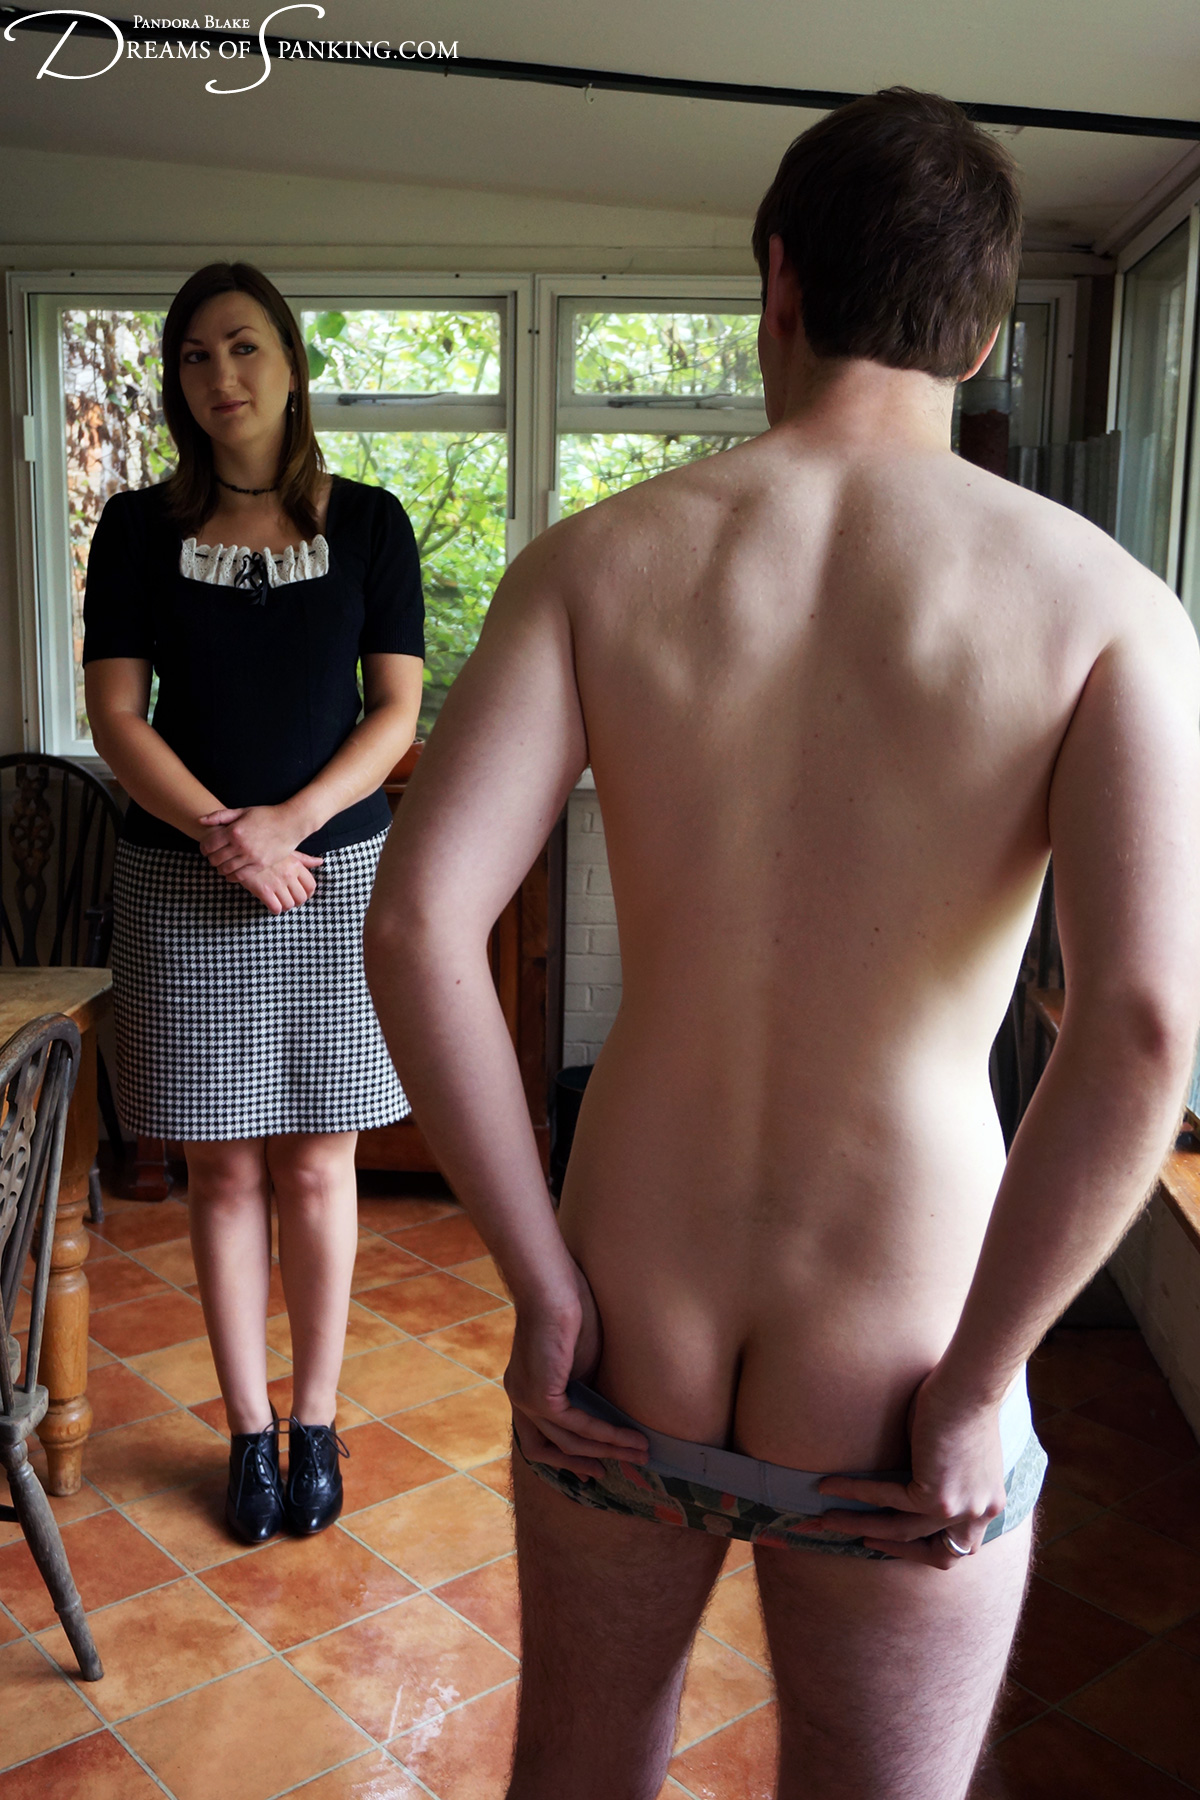 Erotic story humiliation punished nude